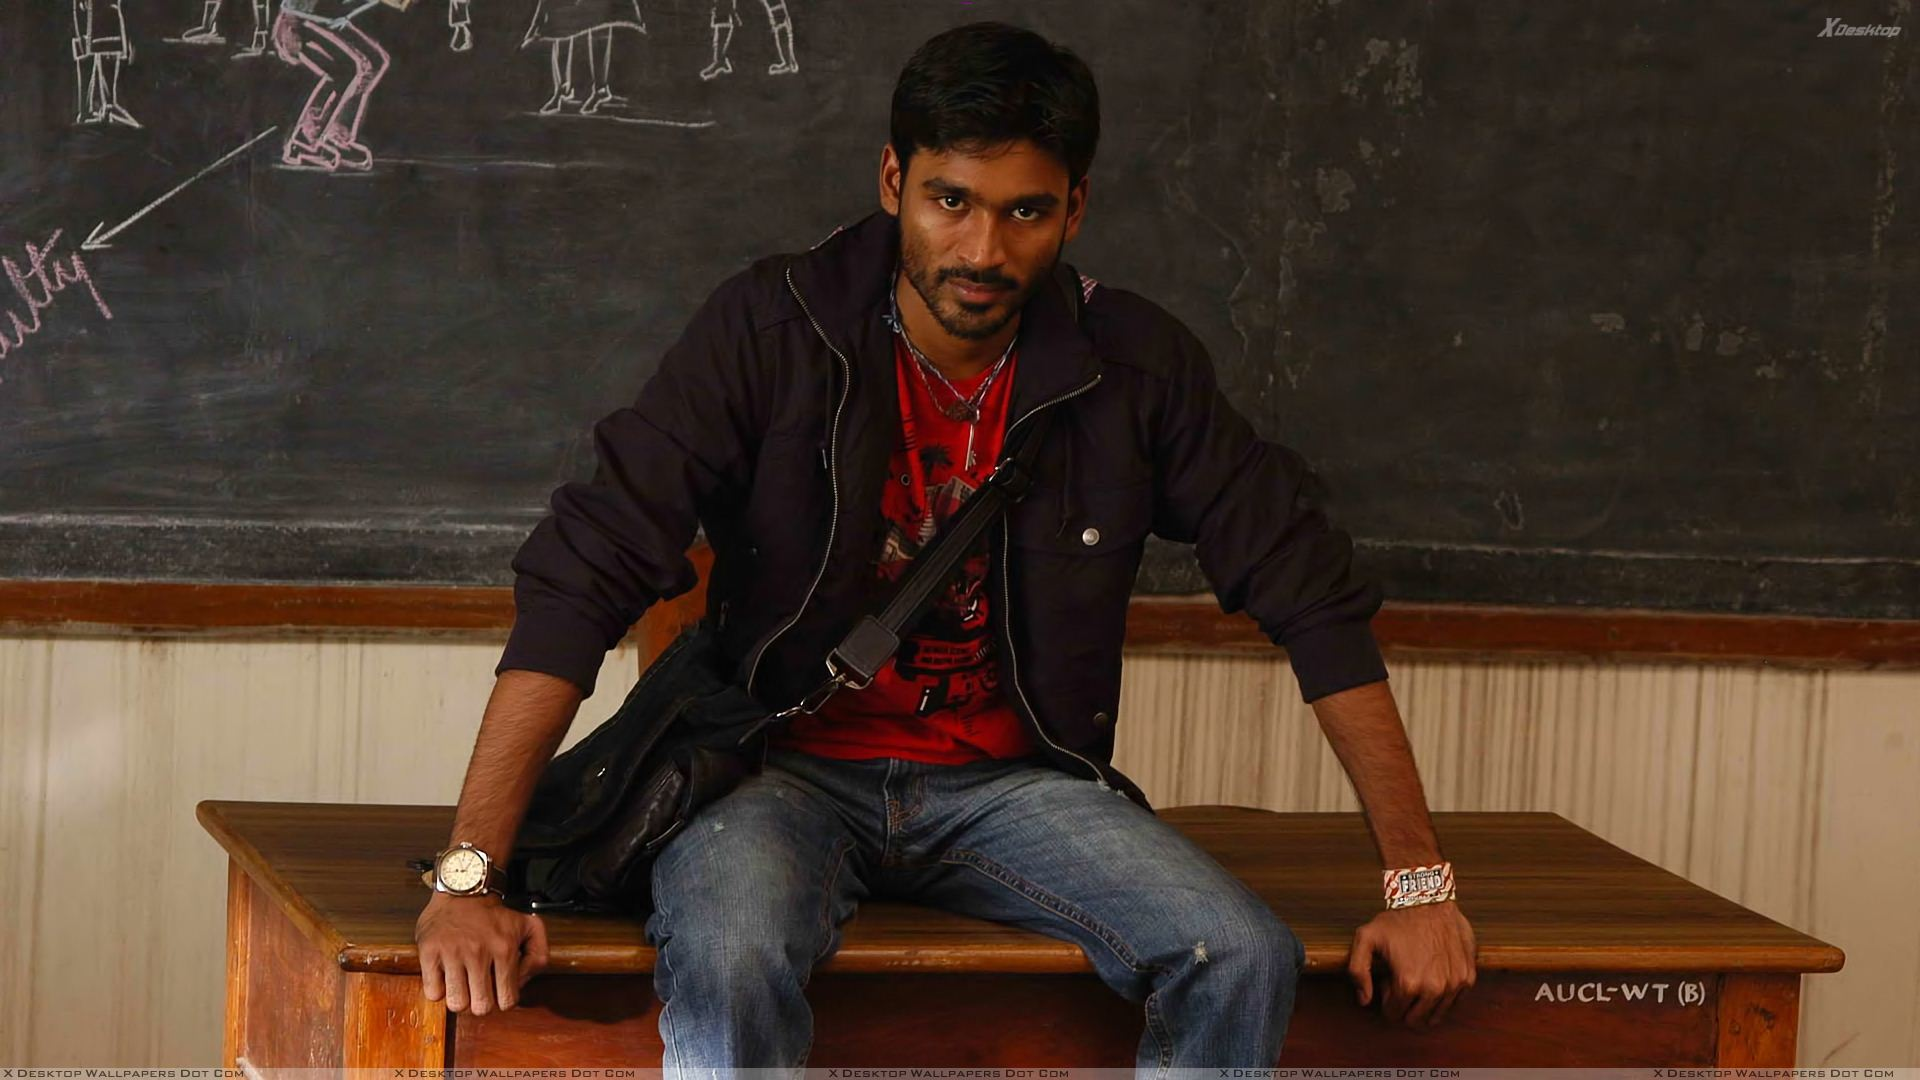 dhanush sitting pose on table in classroom in kutty movie wallpaper